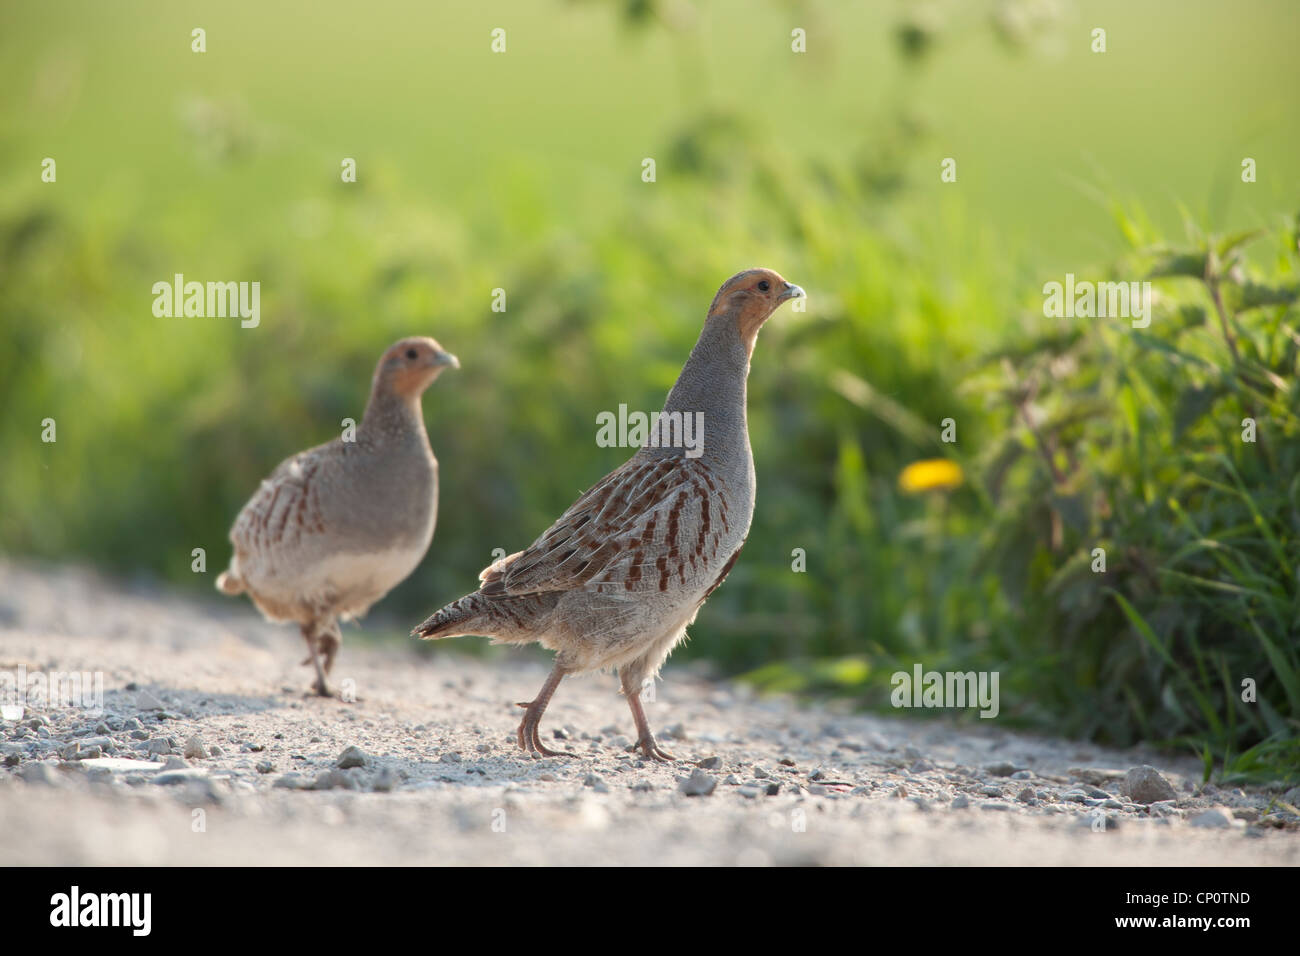 Grey partridges male and female gravel road Holland Europe - Stock Image